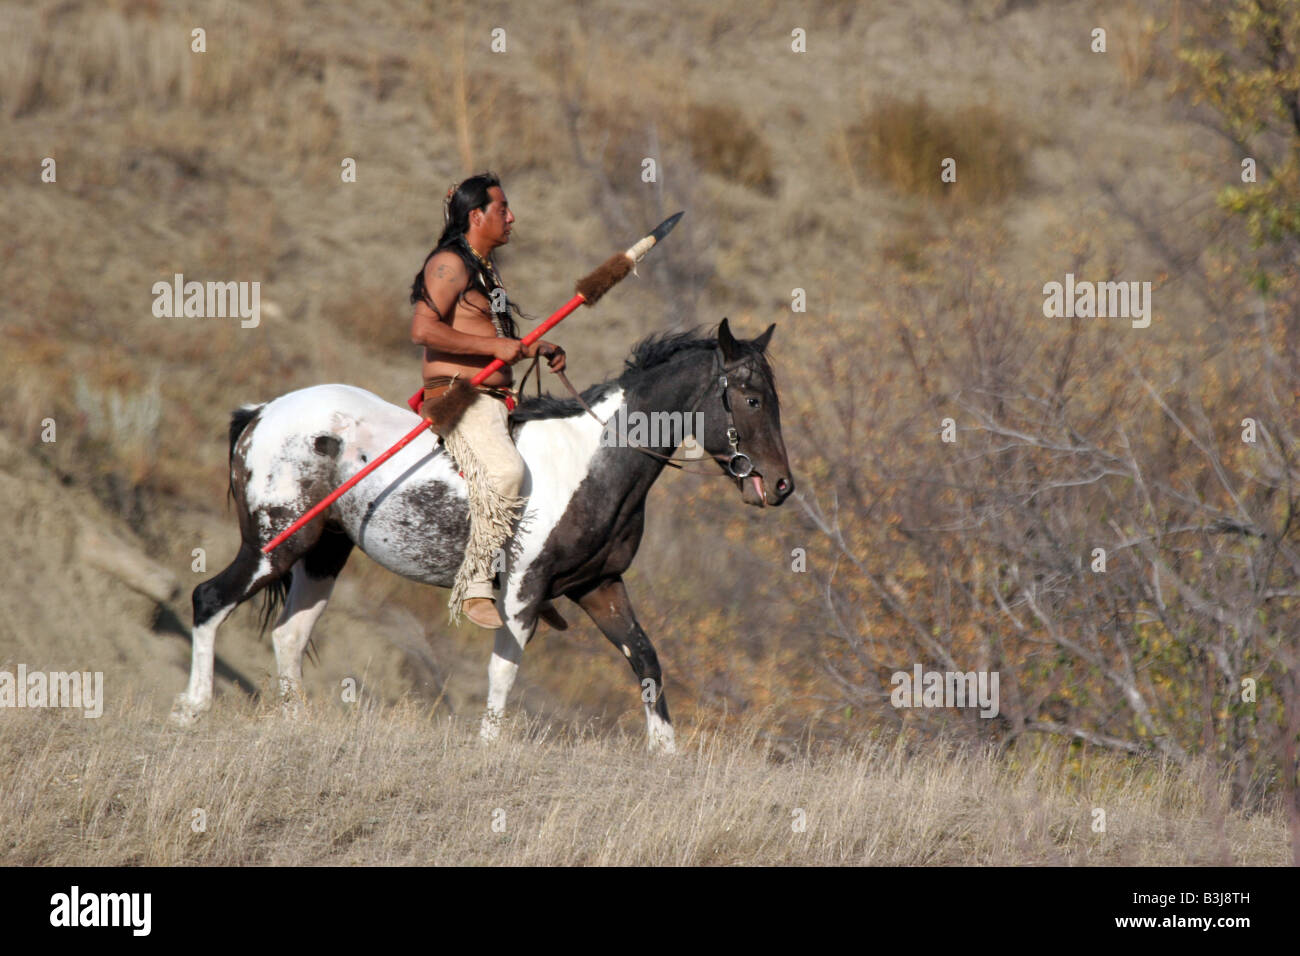 A Native American Indian on horseback on the reservation in South Dakota Stock Photo